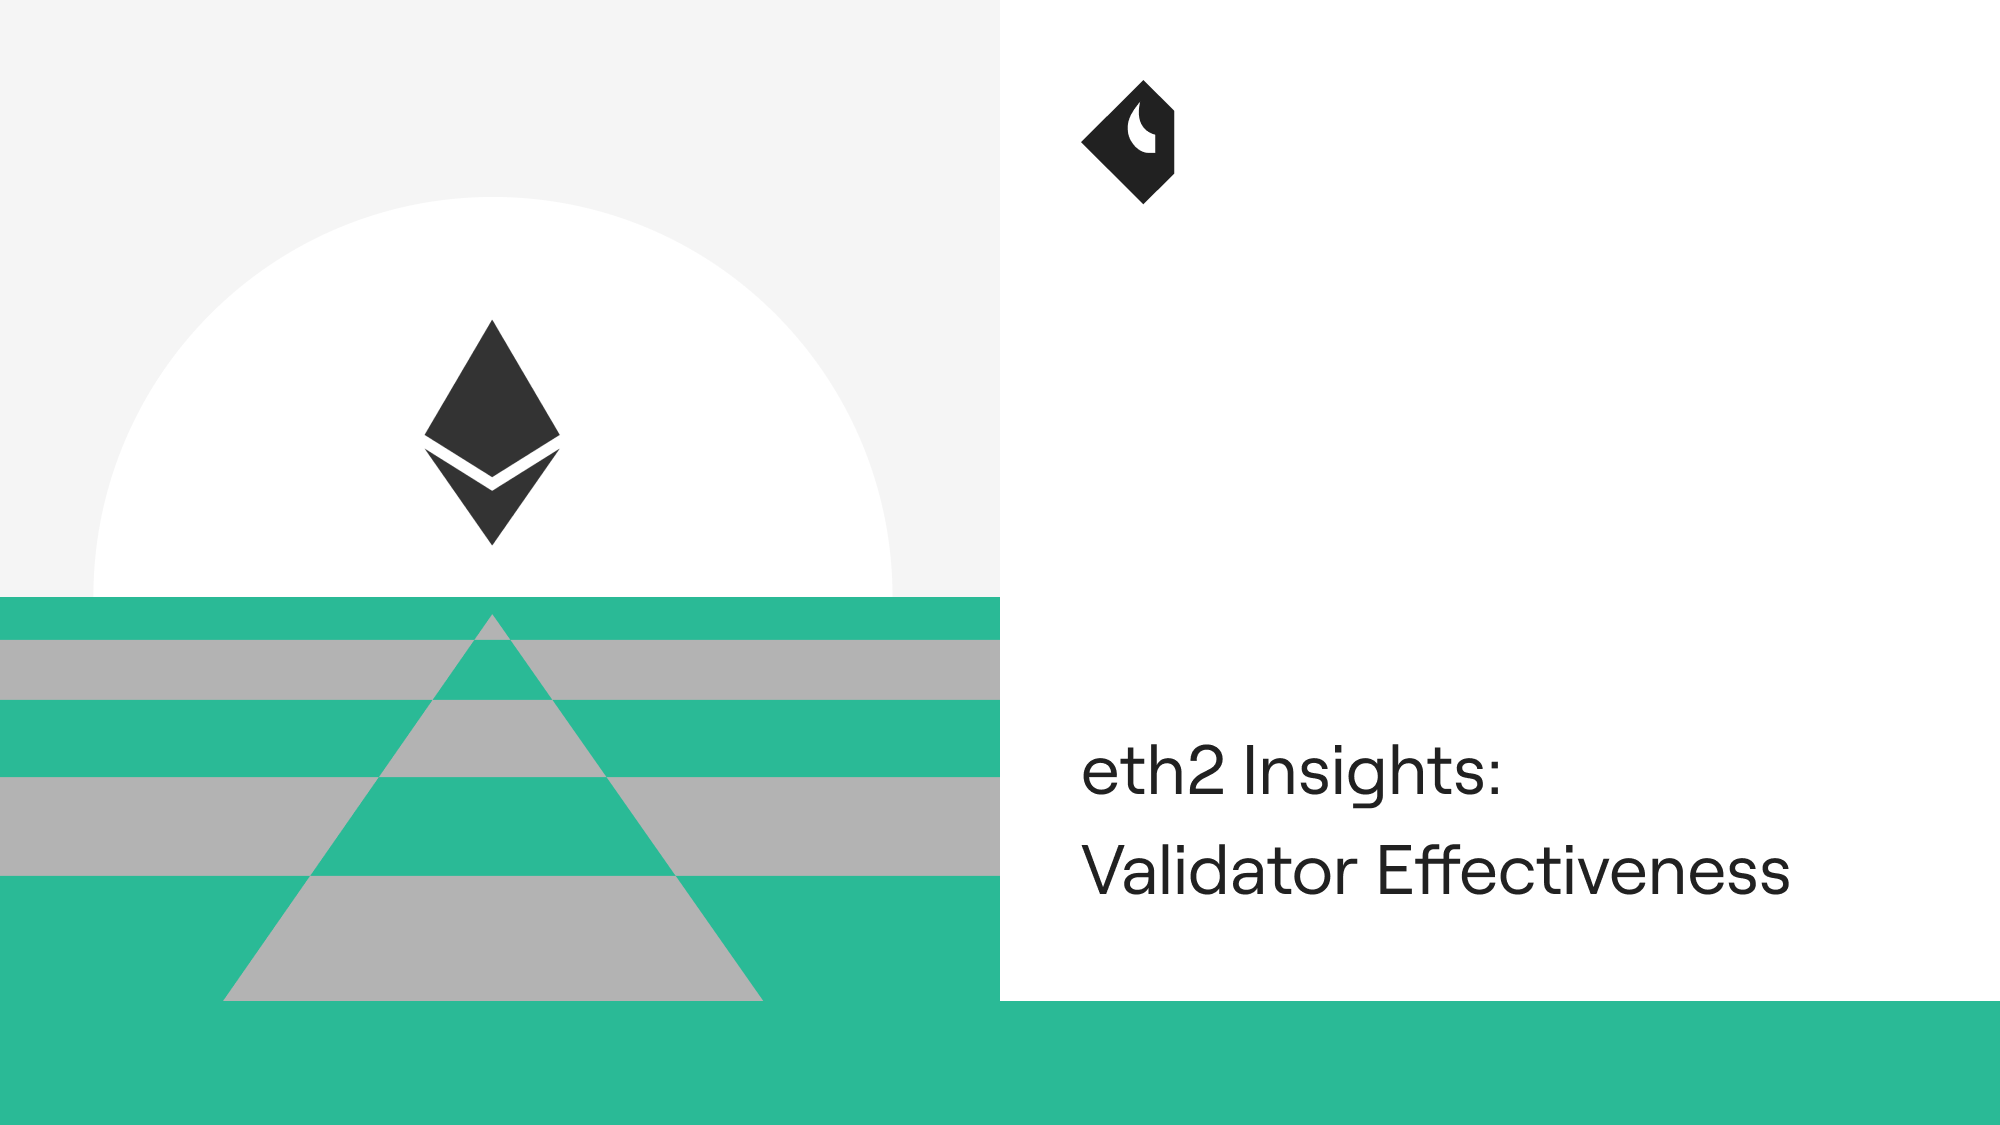 eth2 Insights: Validator Effectiveness